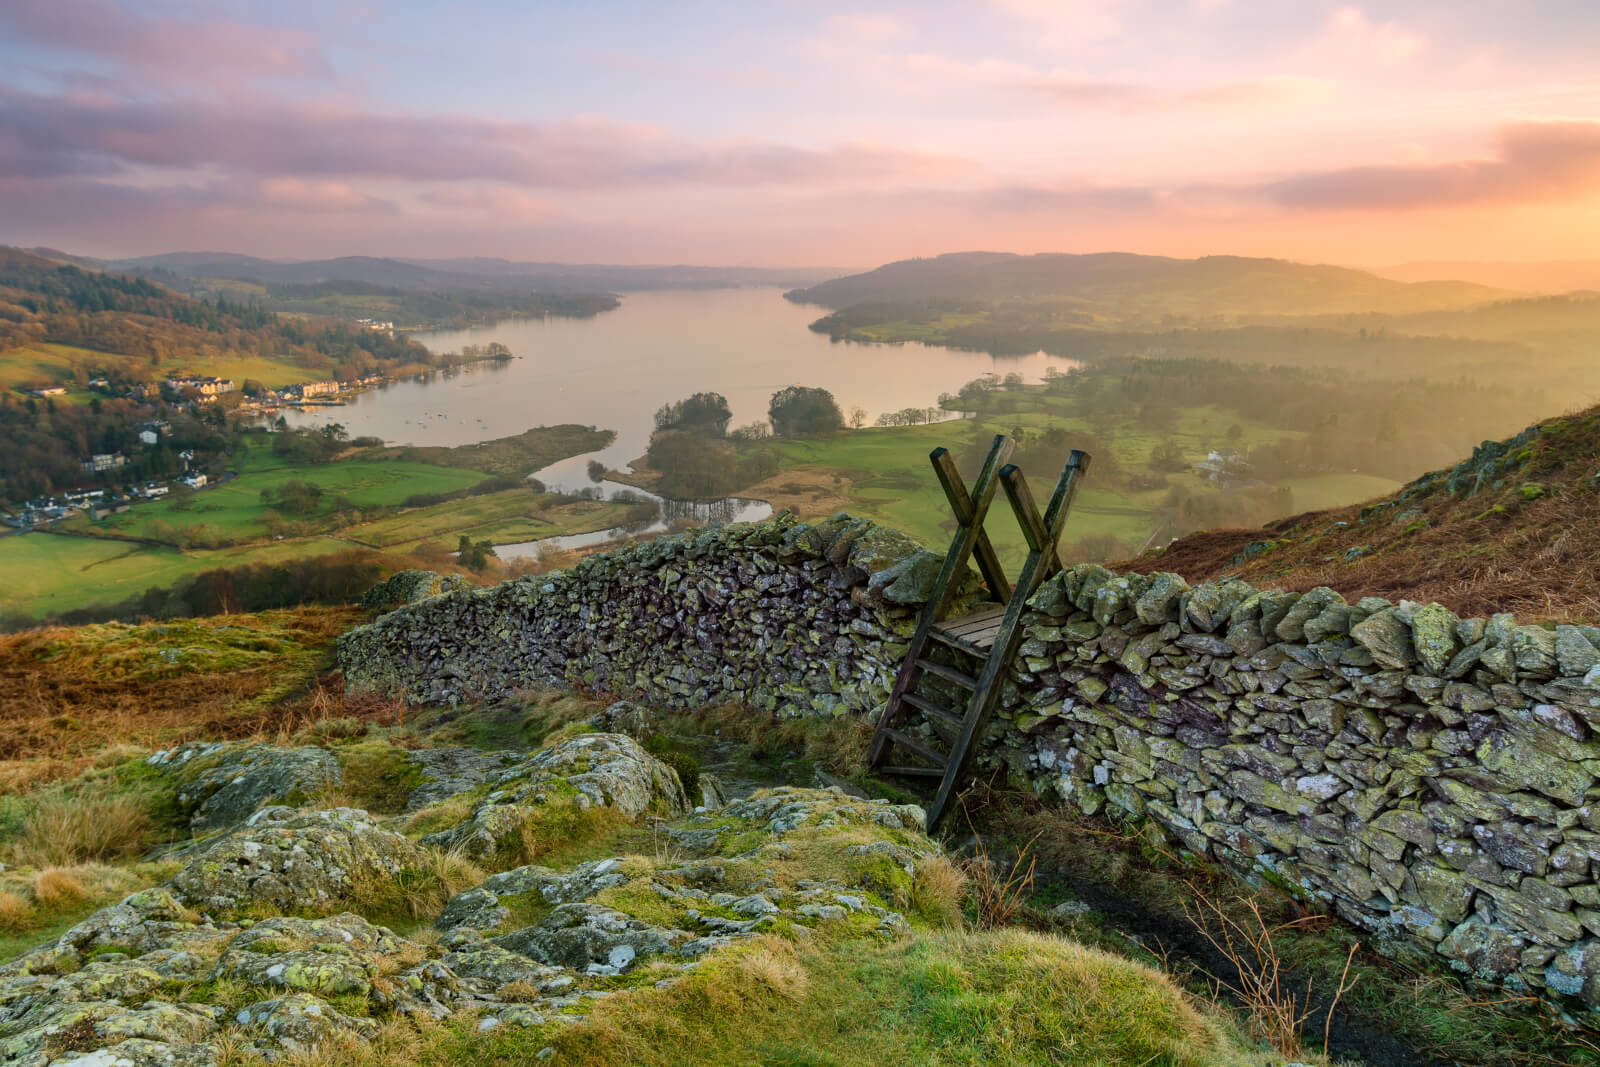 Last Minute Cottages in <span>Lake District</span> - Save up to 60%